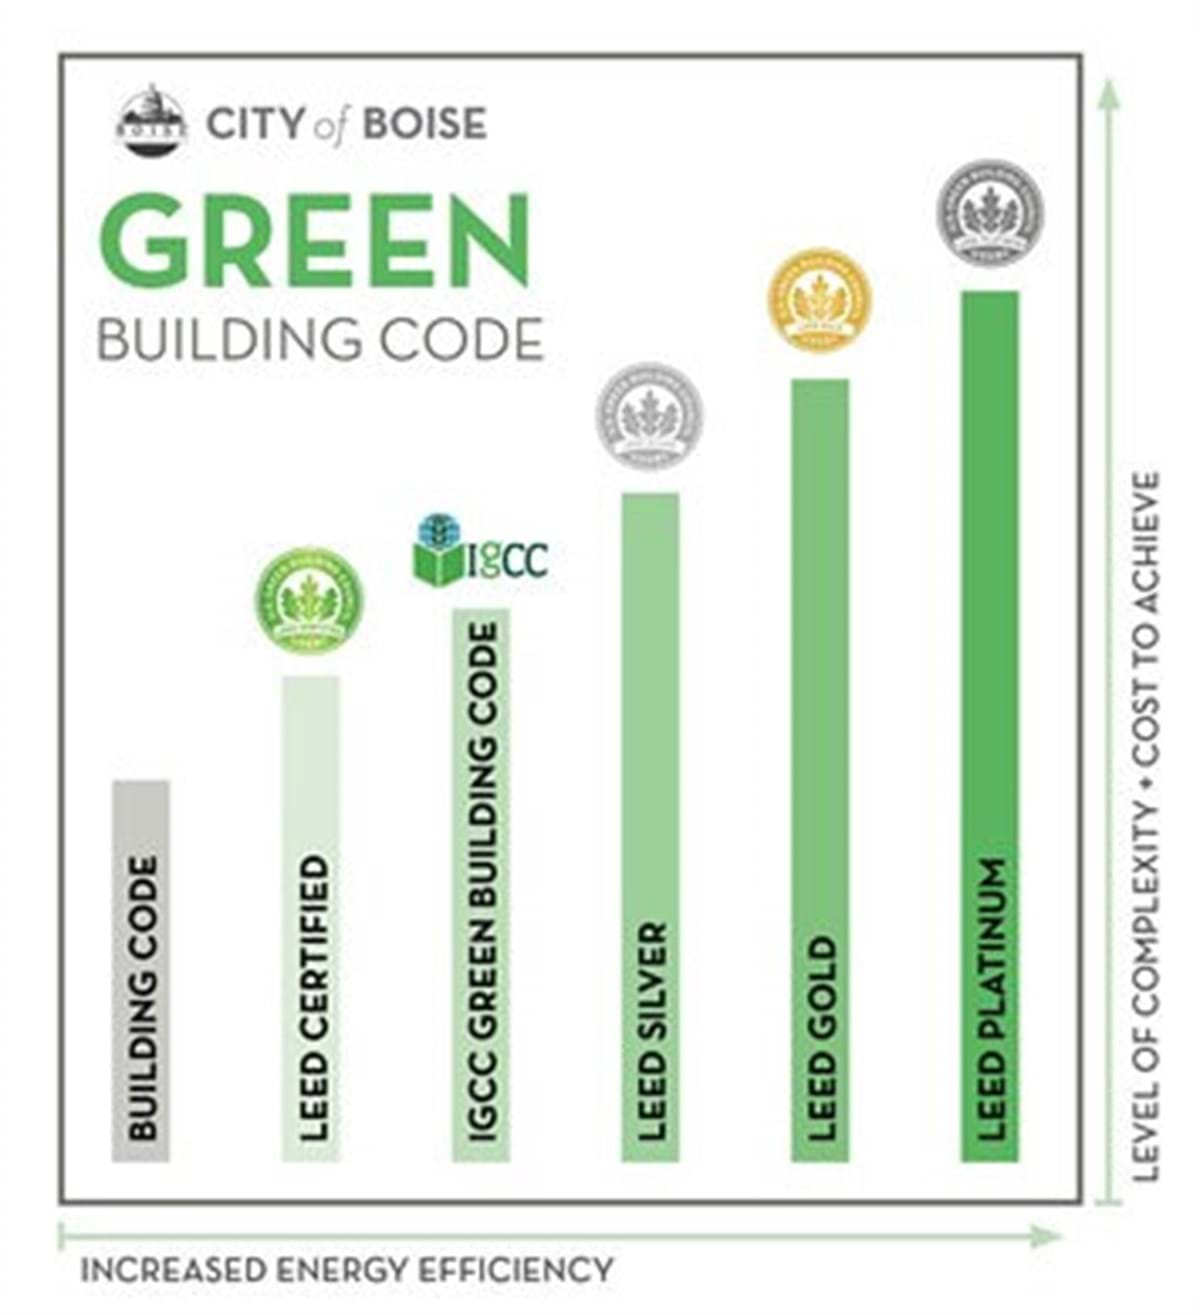 Green Building Code comparison chart